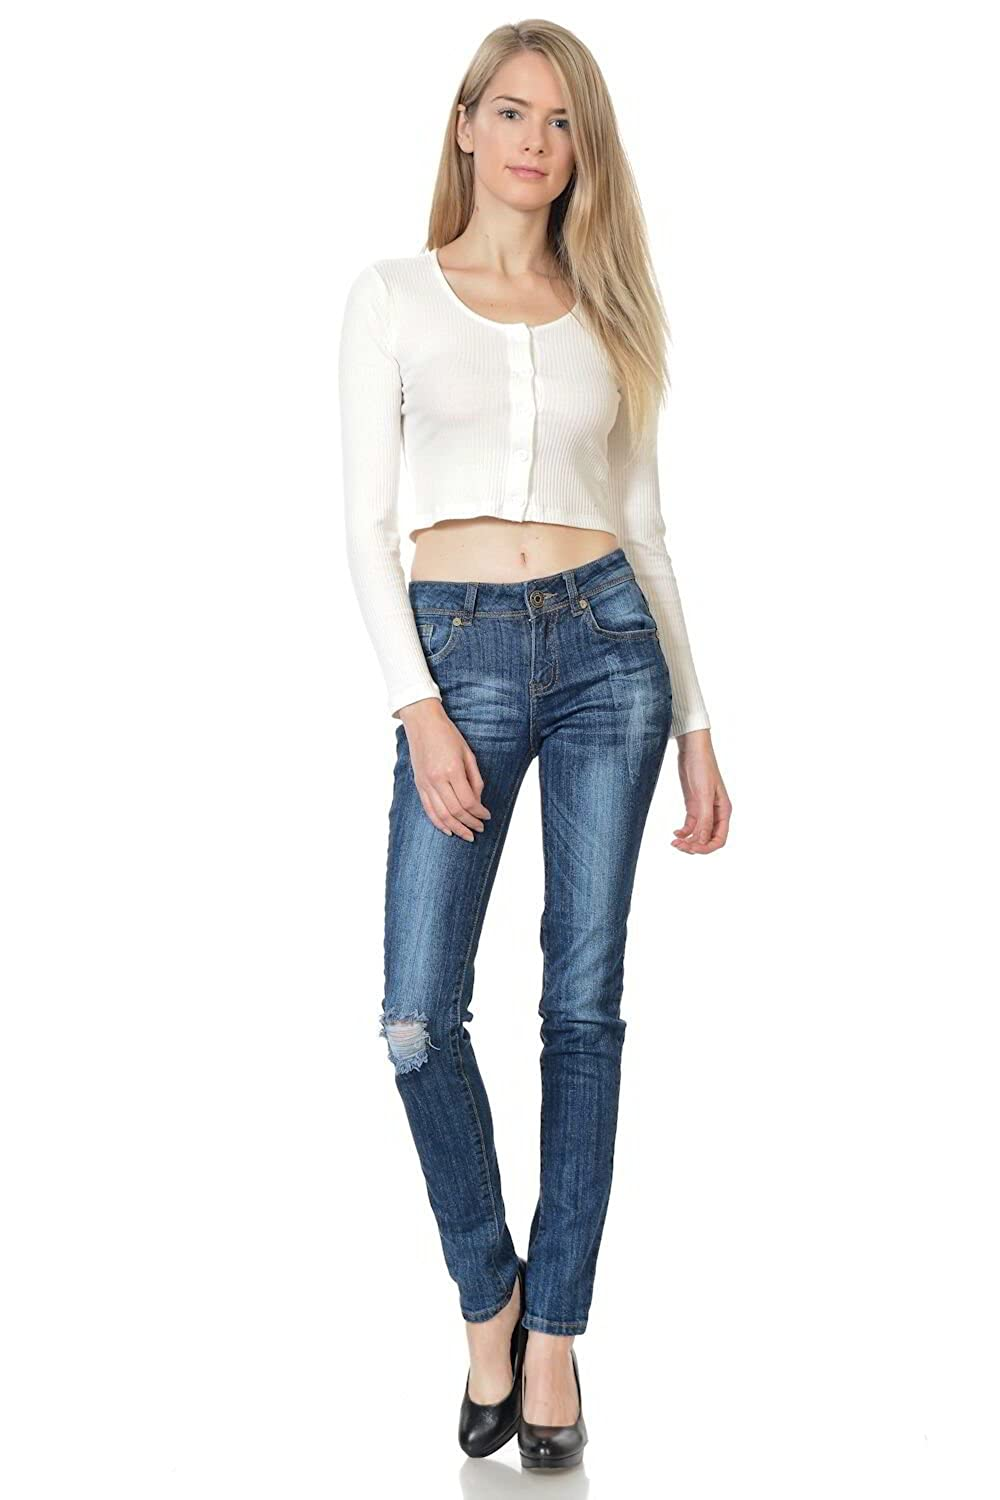 Sweet Look Premium Edition Women's Jeans - Style X24